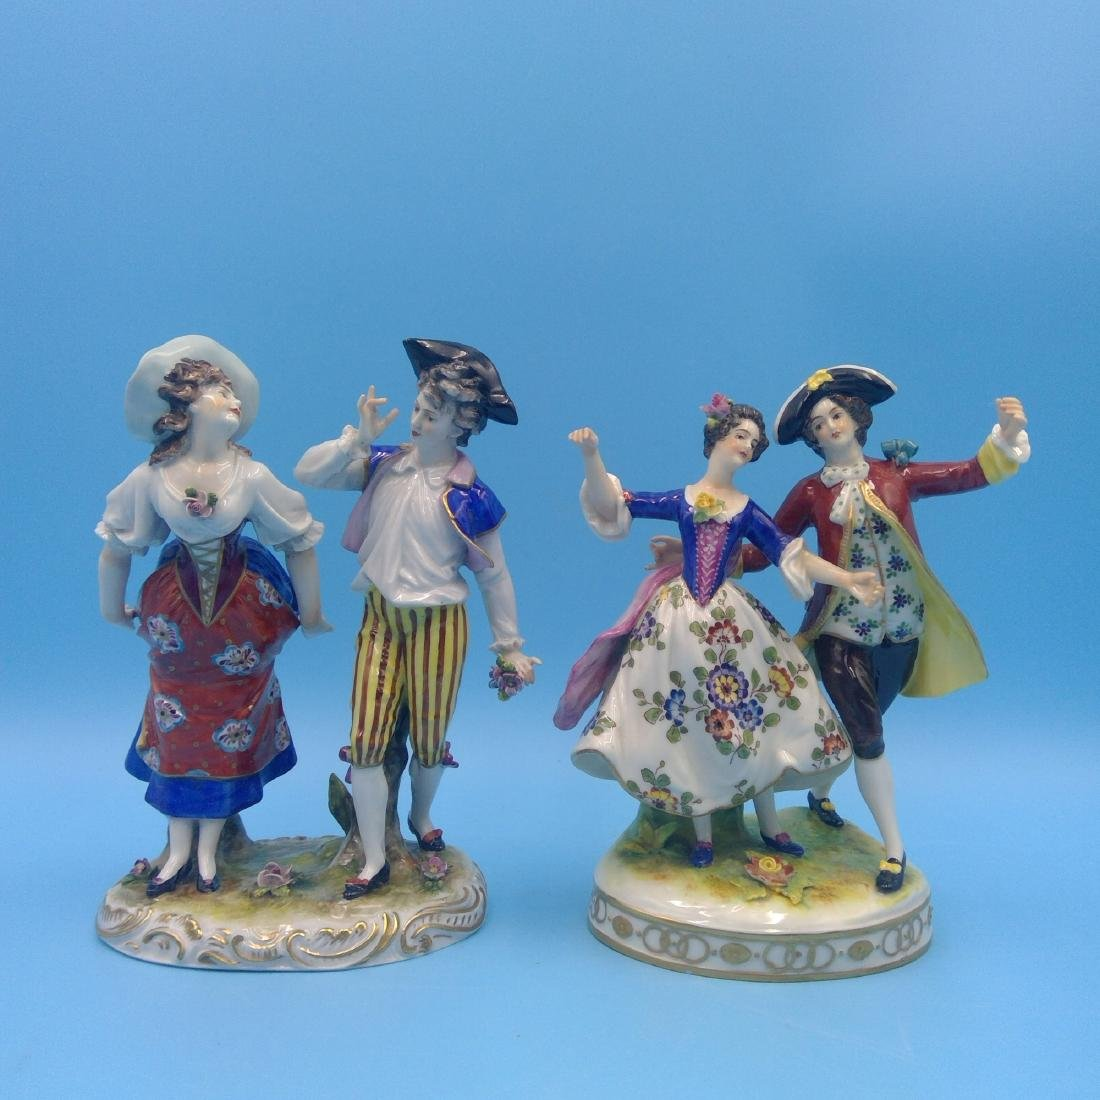 GROUP OF 2 VOLKSTEDT GERMAN PORCELAIN FIGURINES